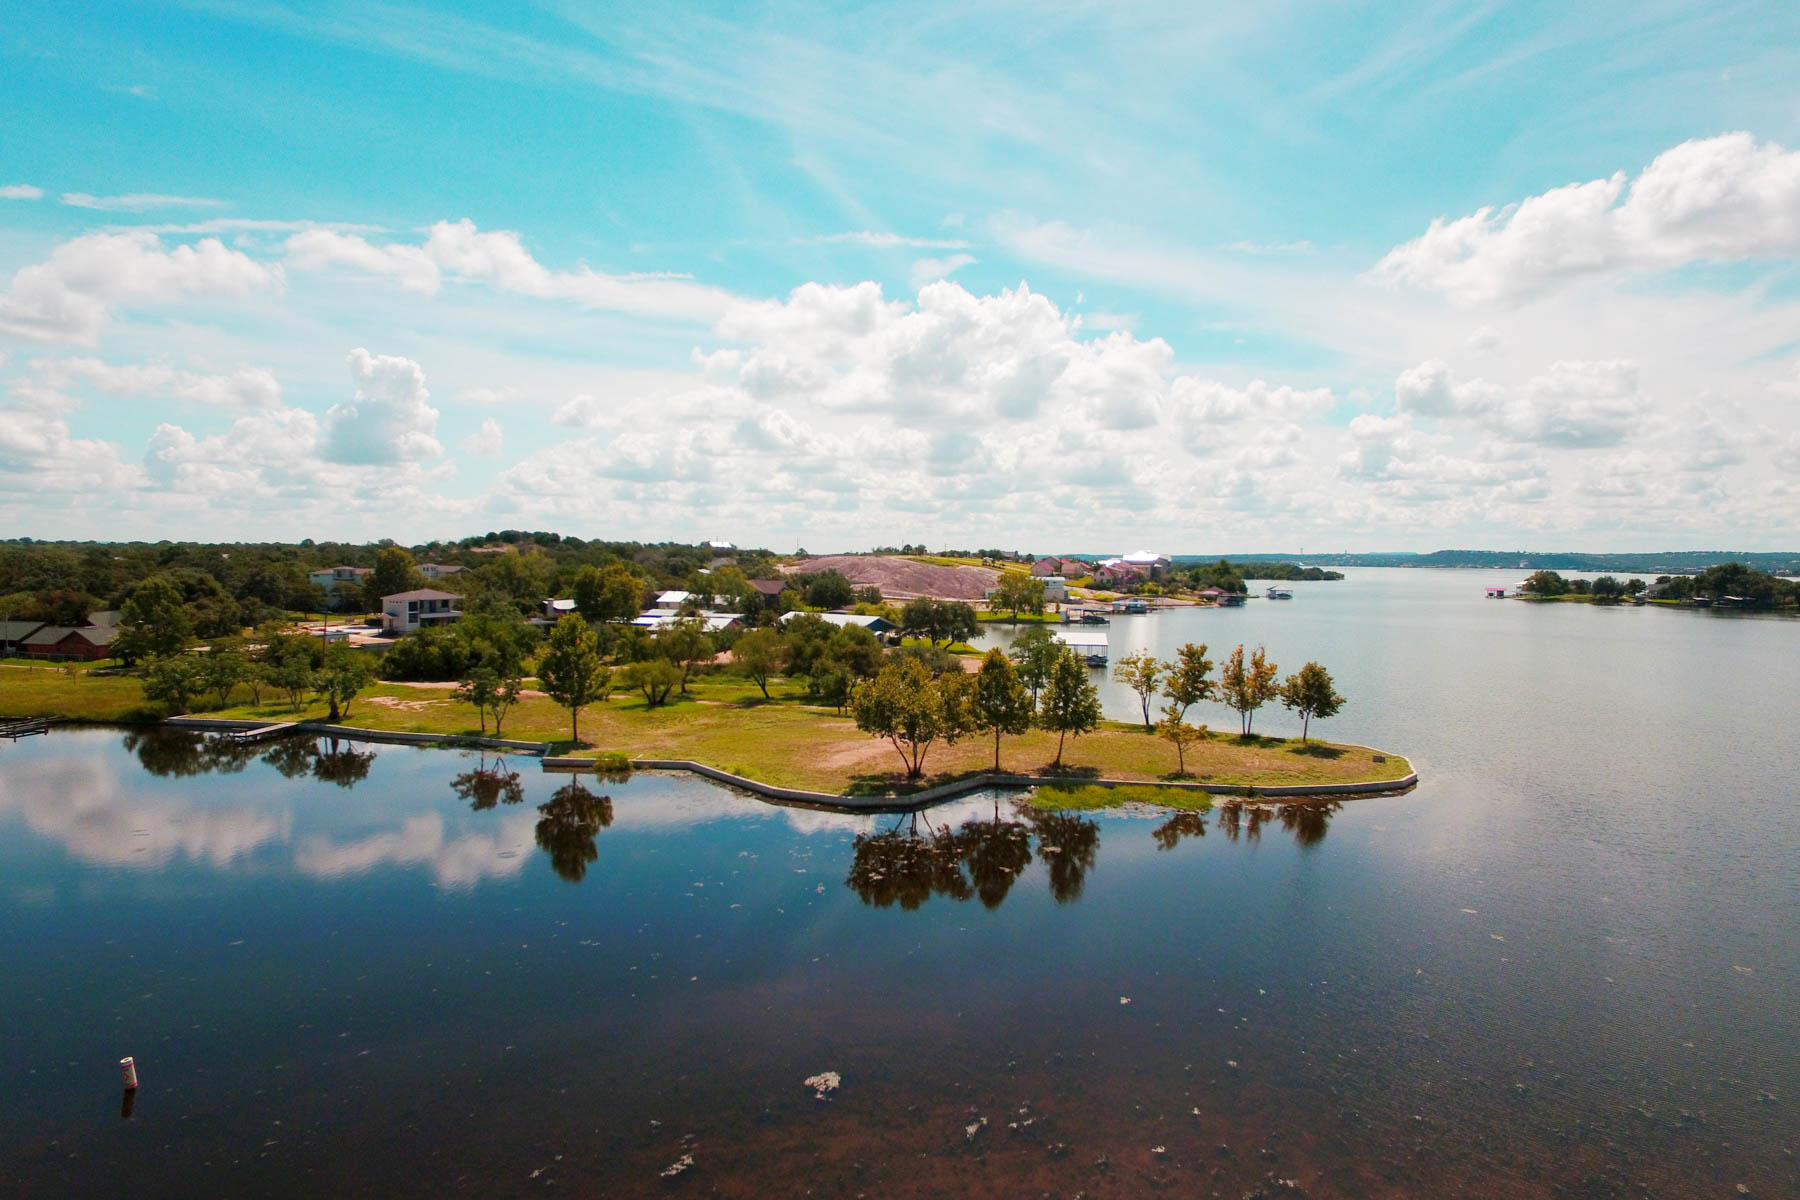 Terreno por un Venta en A Rare Opportunity on Lake LB 701 Woodland Hills Dr Granite Shoals, Texas 78654 Estados Unidos